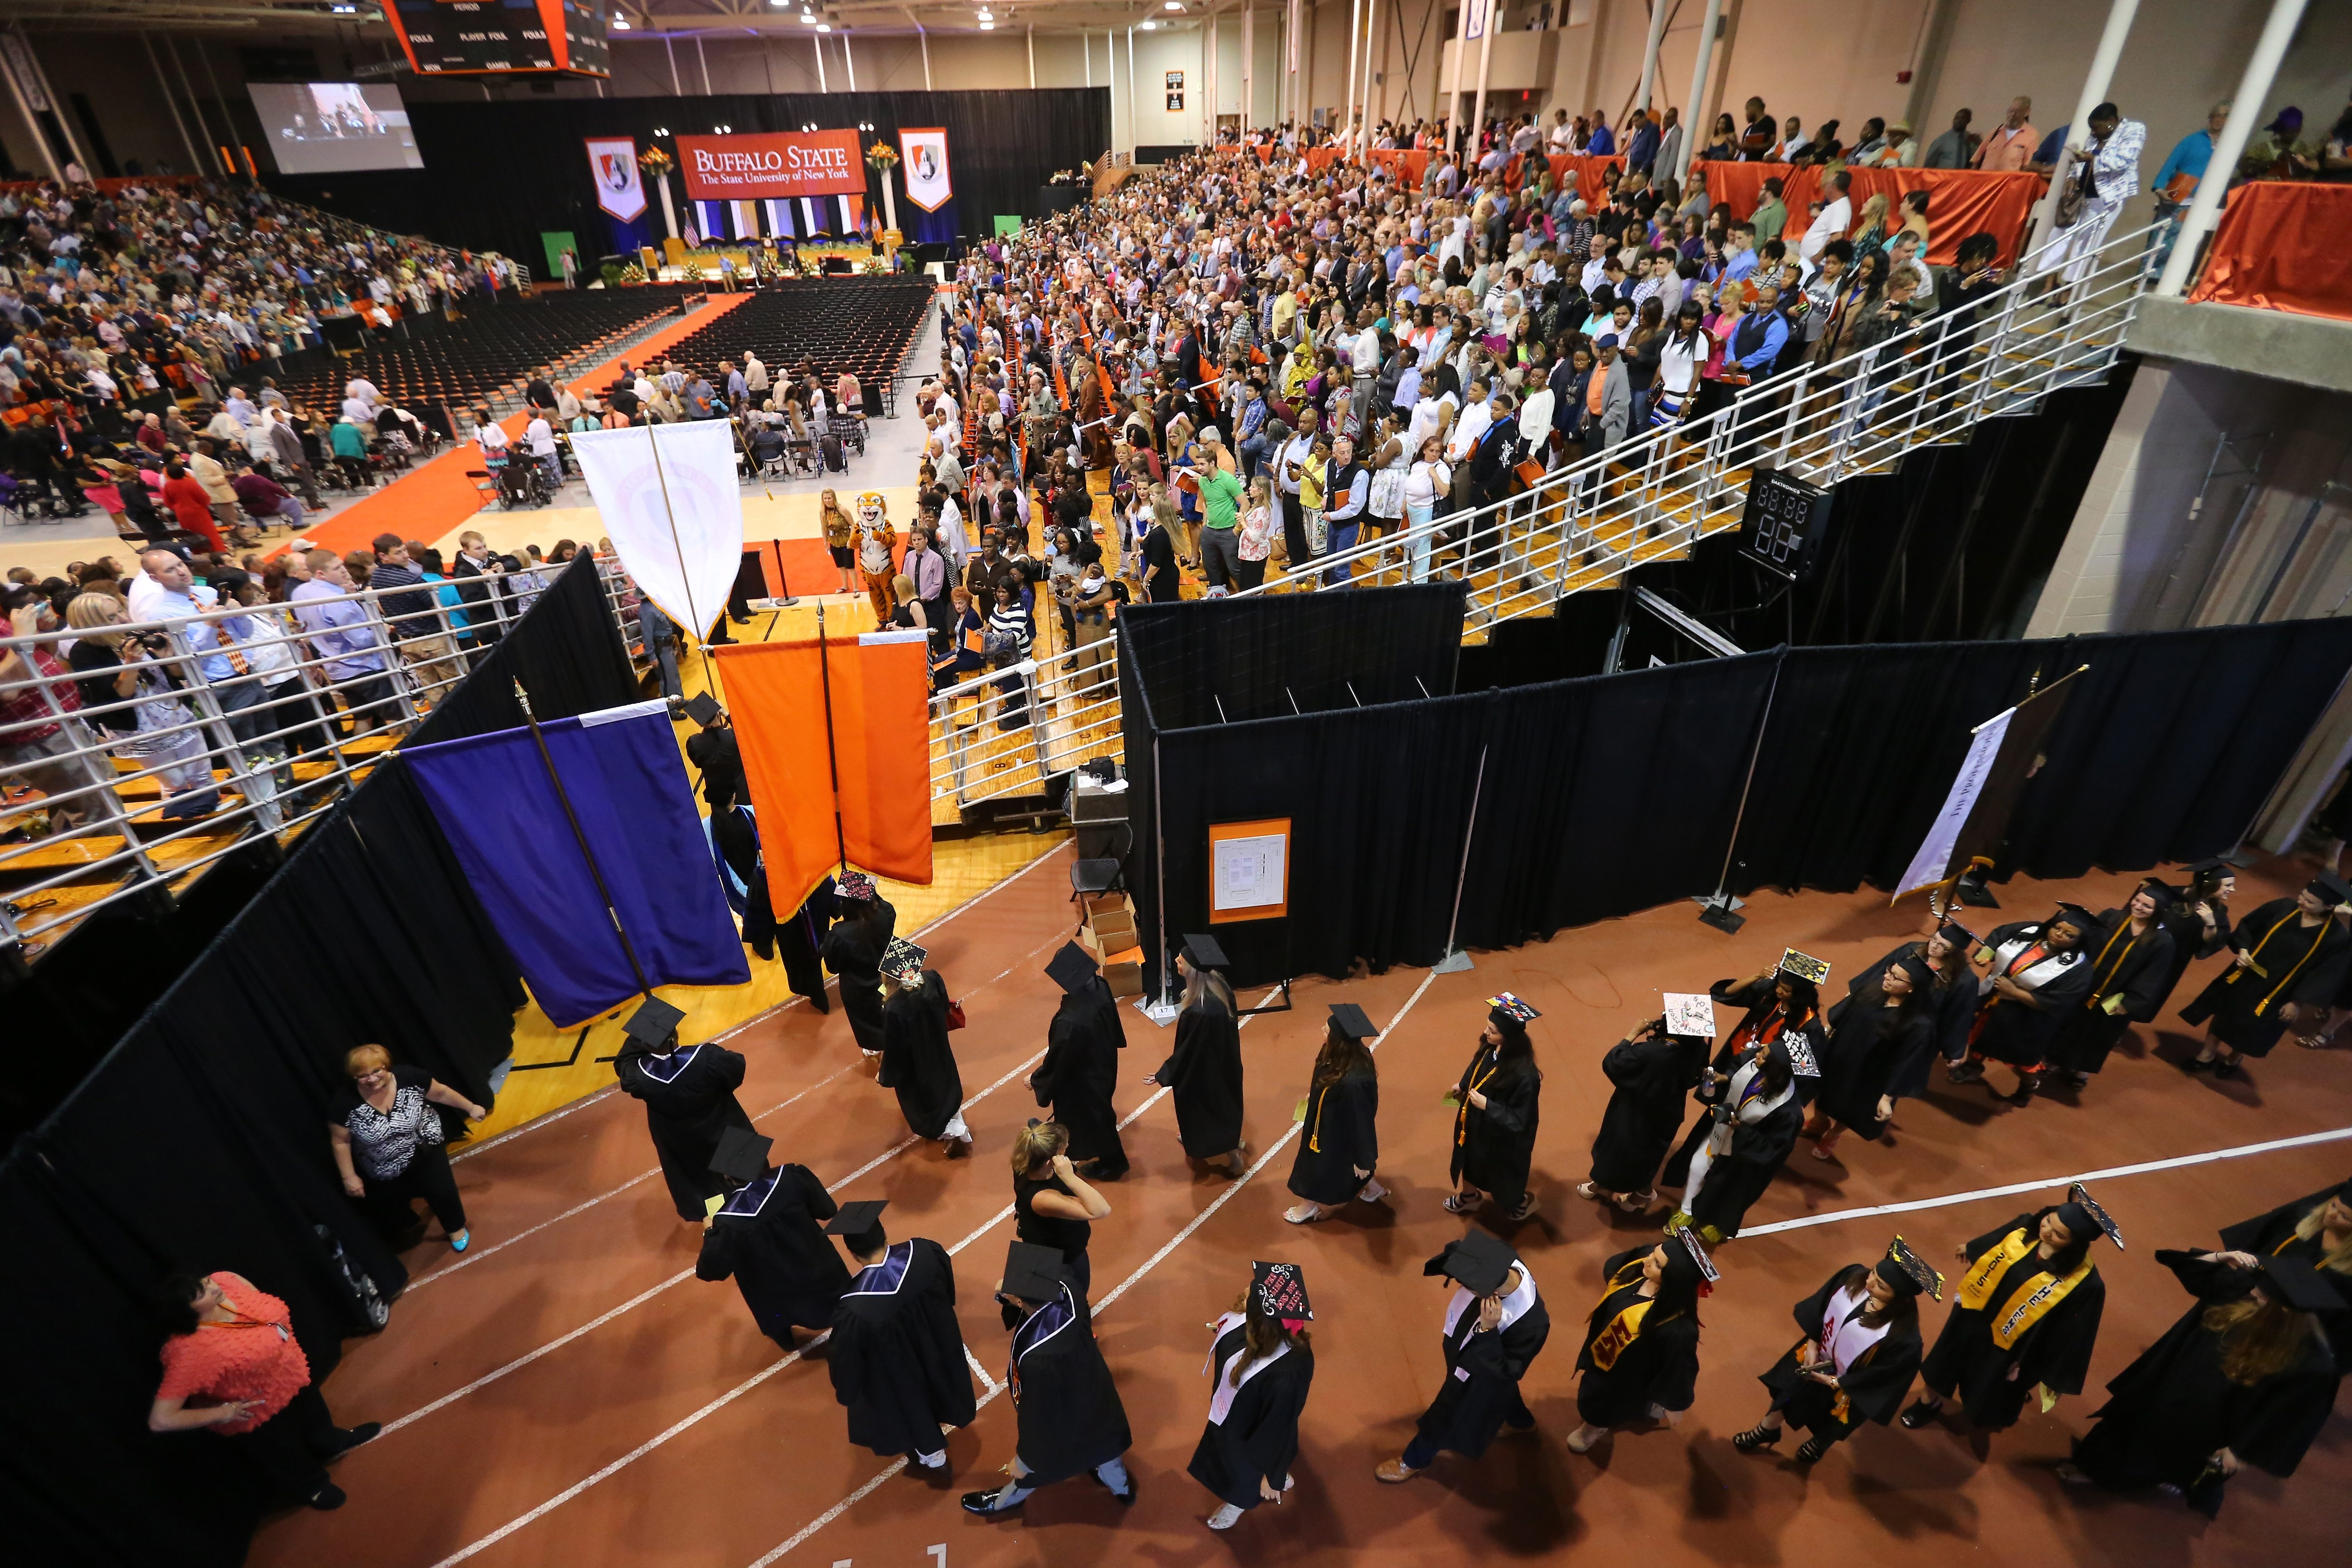 SUNY Buffalo State students march into the Sports Arena on the campus Saturday for their graduation ceremony. Nearly 2,000 undergraduate and more than 500 graduate students received their degrees.